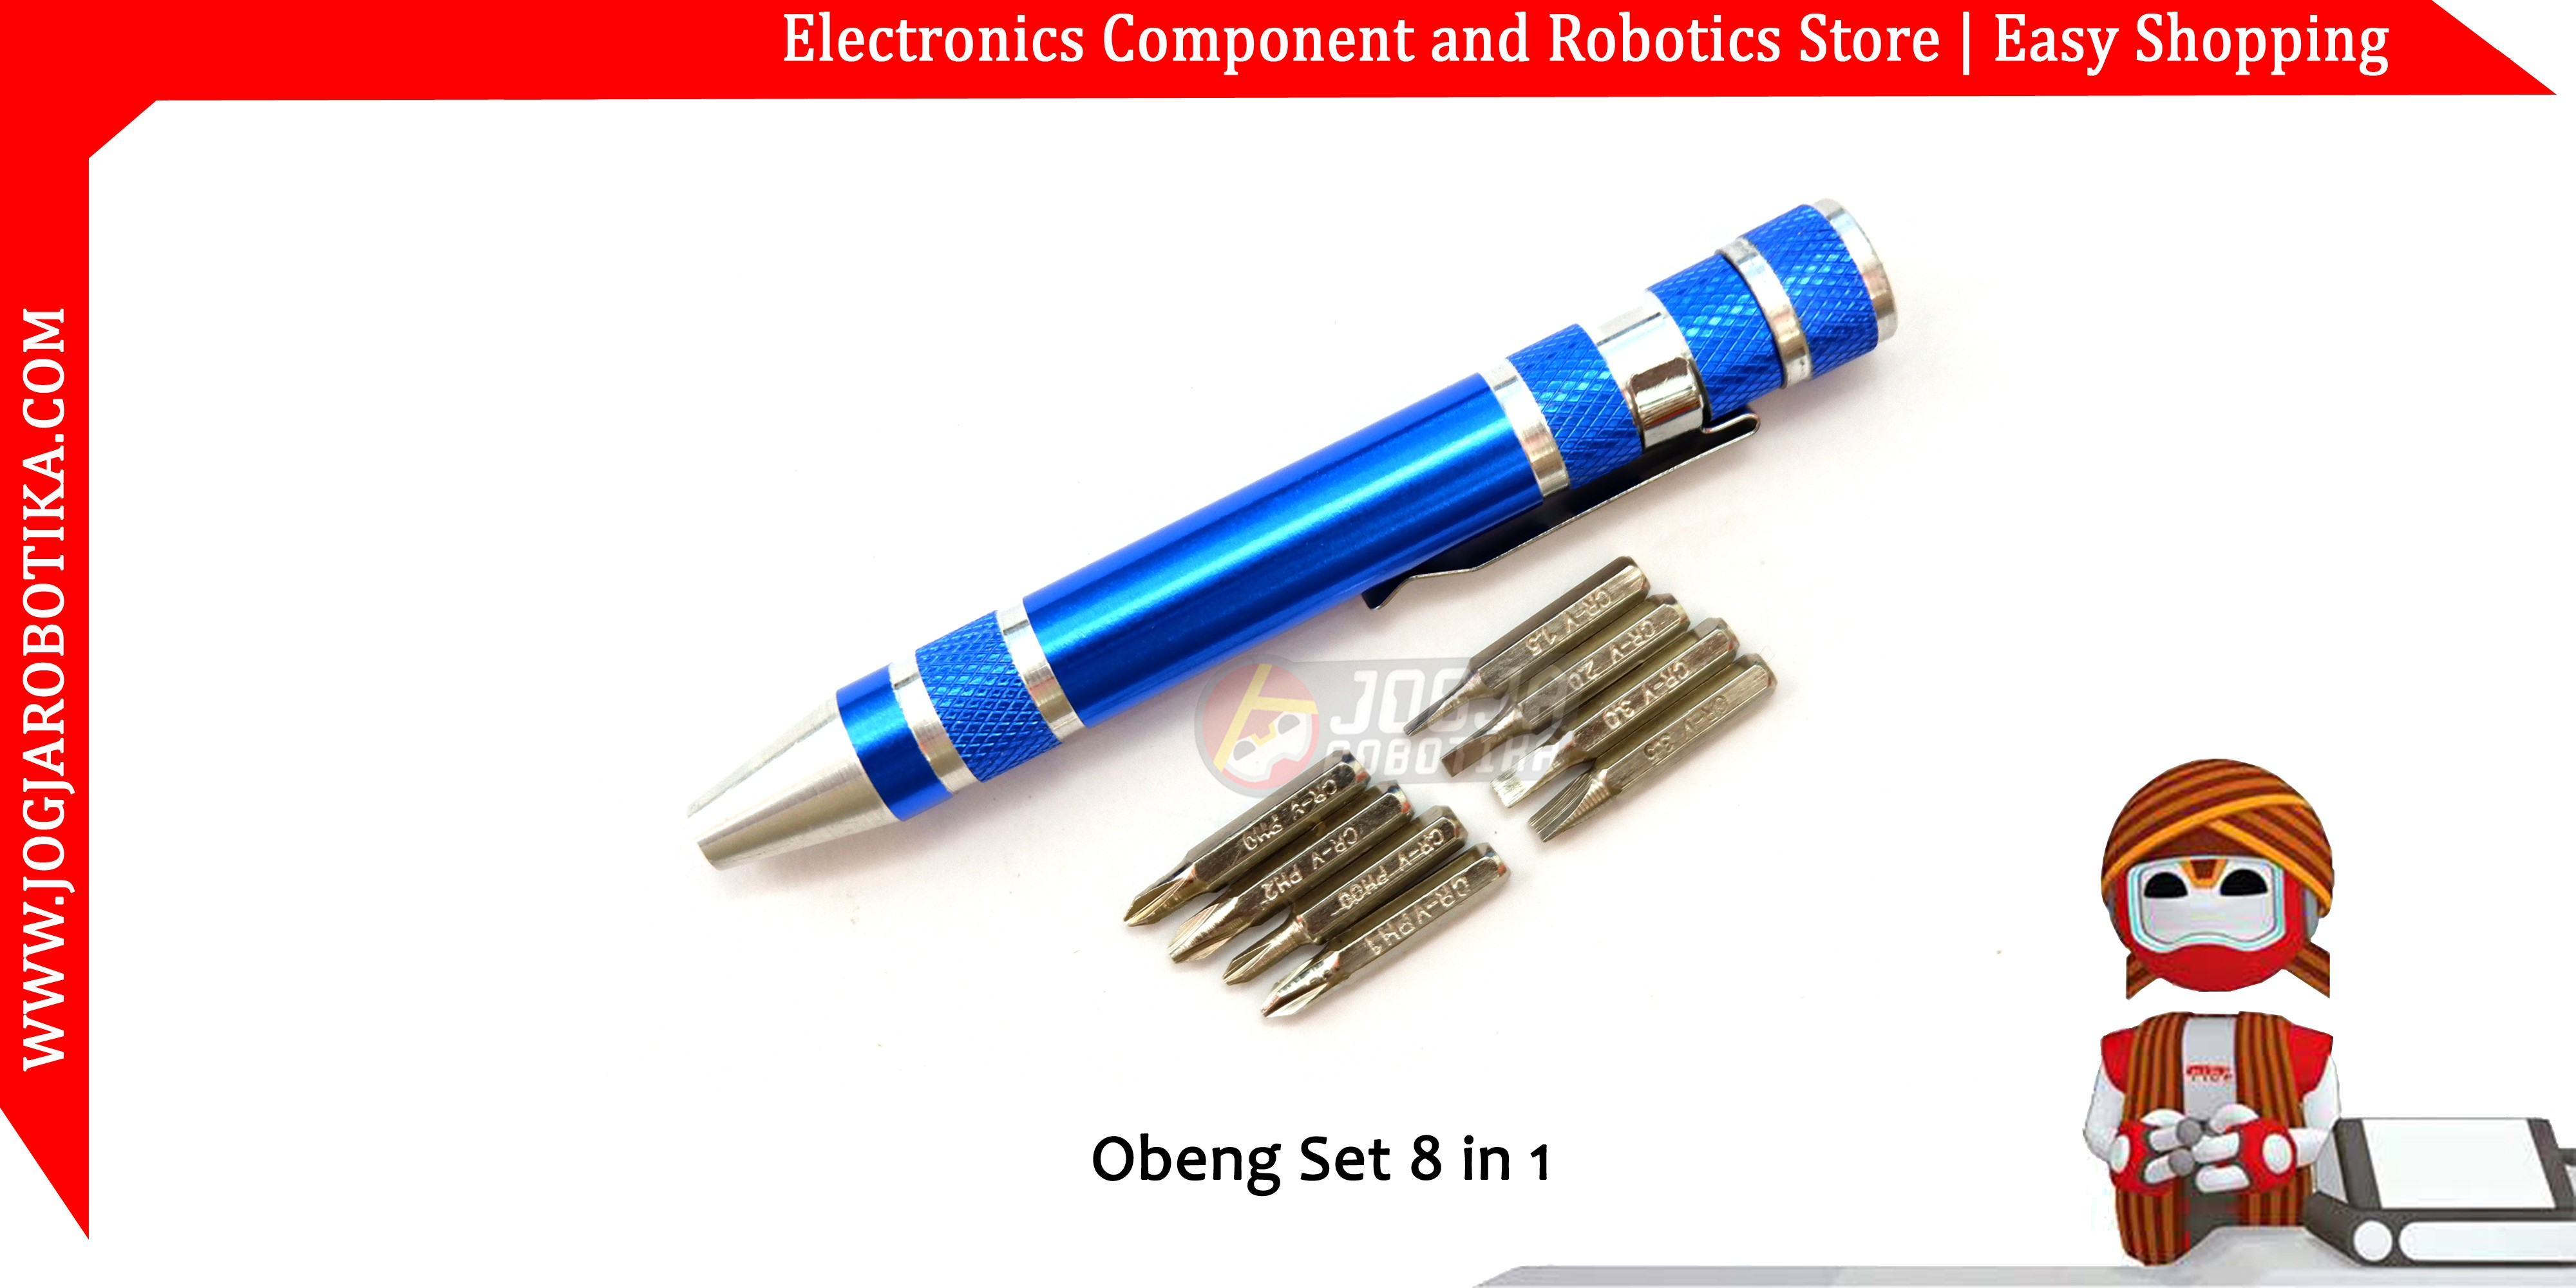 Obeng Set 8 In 1 Toko Komponen Elektronik Listrik Led Dan Robotika Jakemy Jm 8101 33 Precision Screwdriver Repair Tool Kit